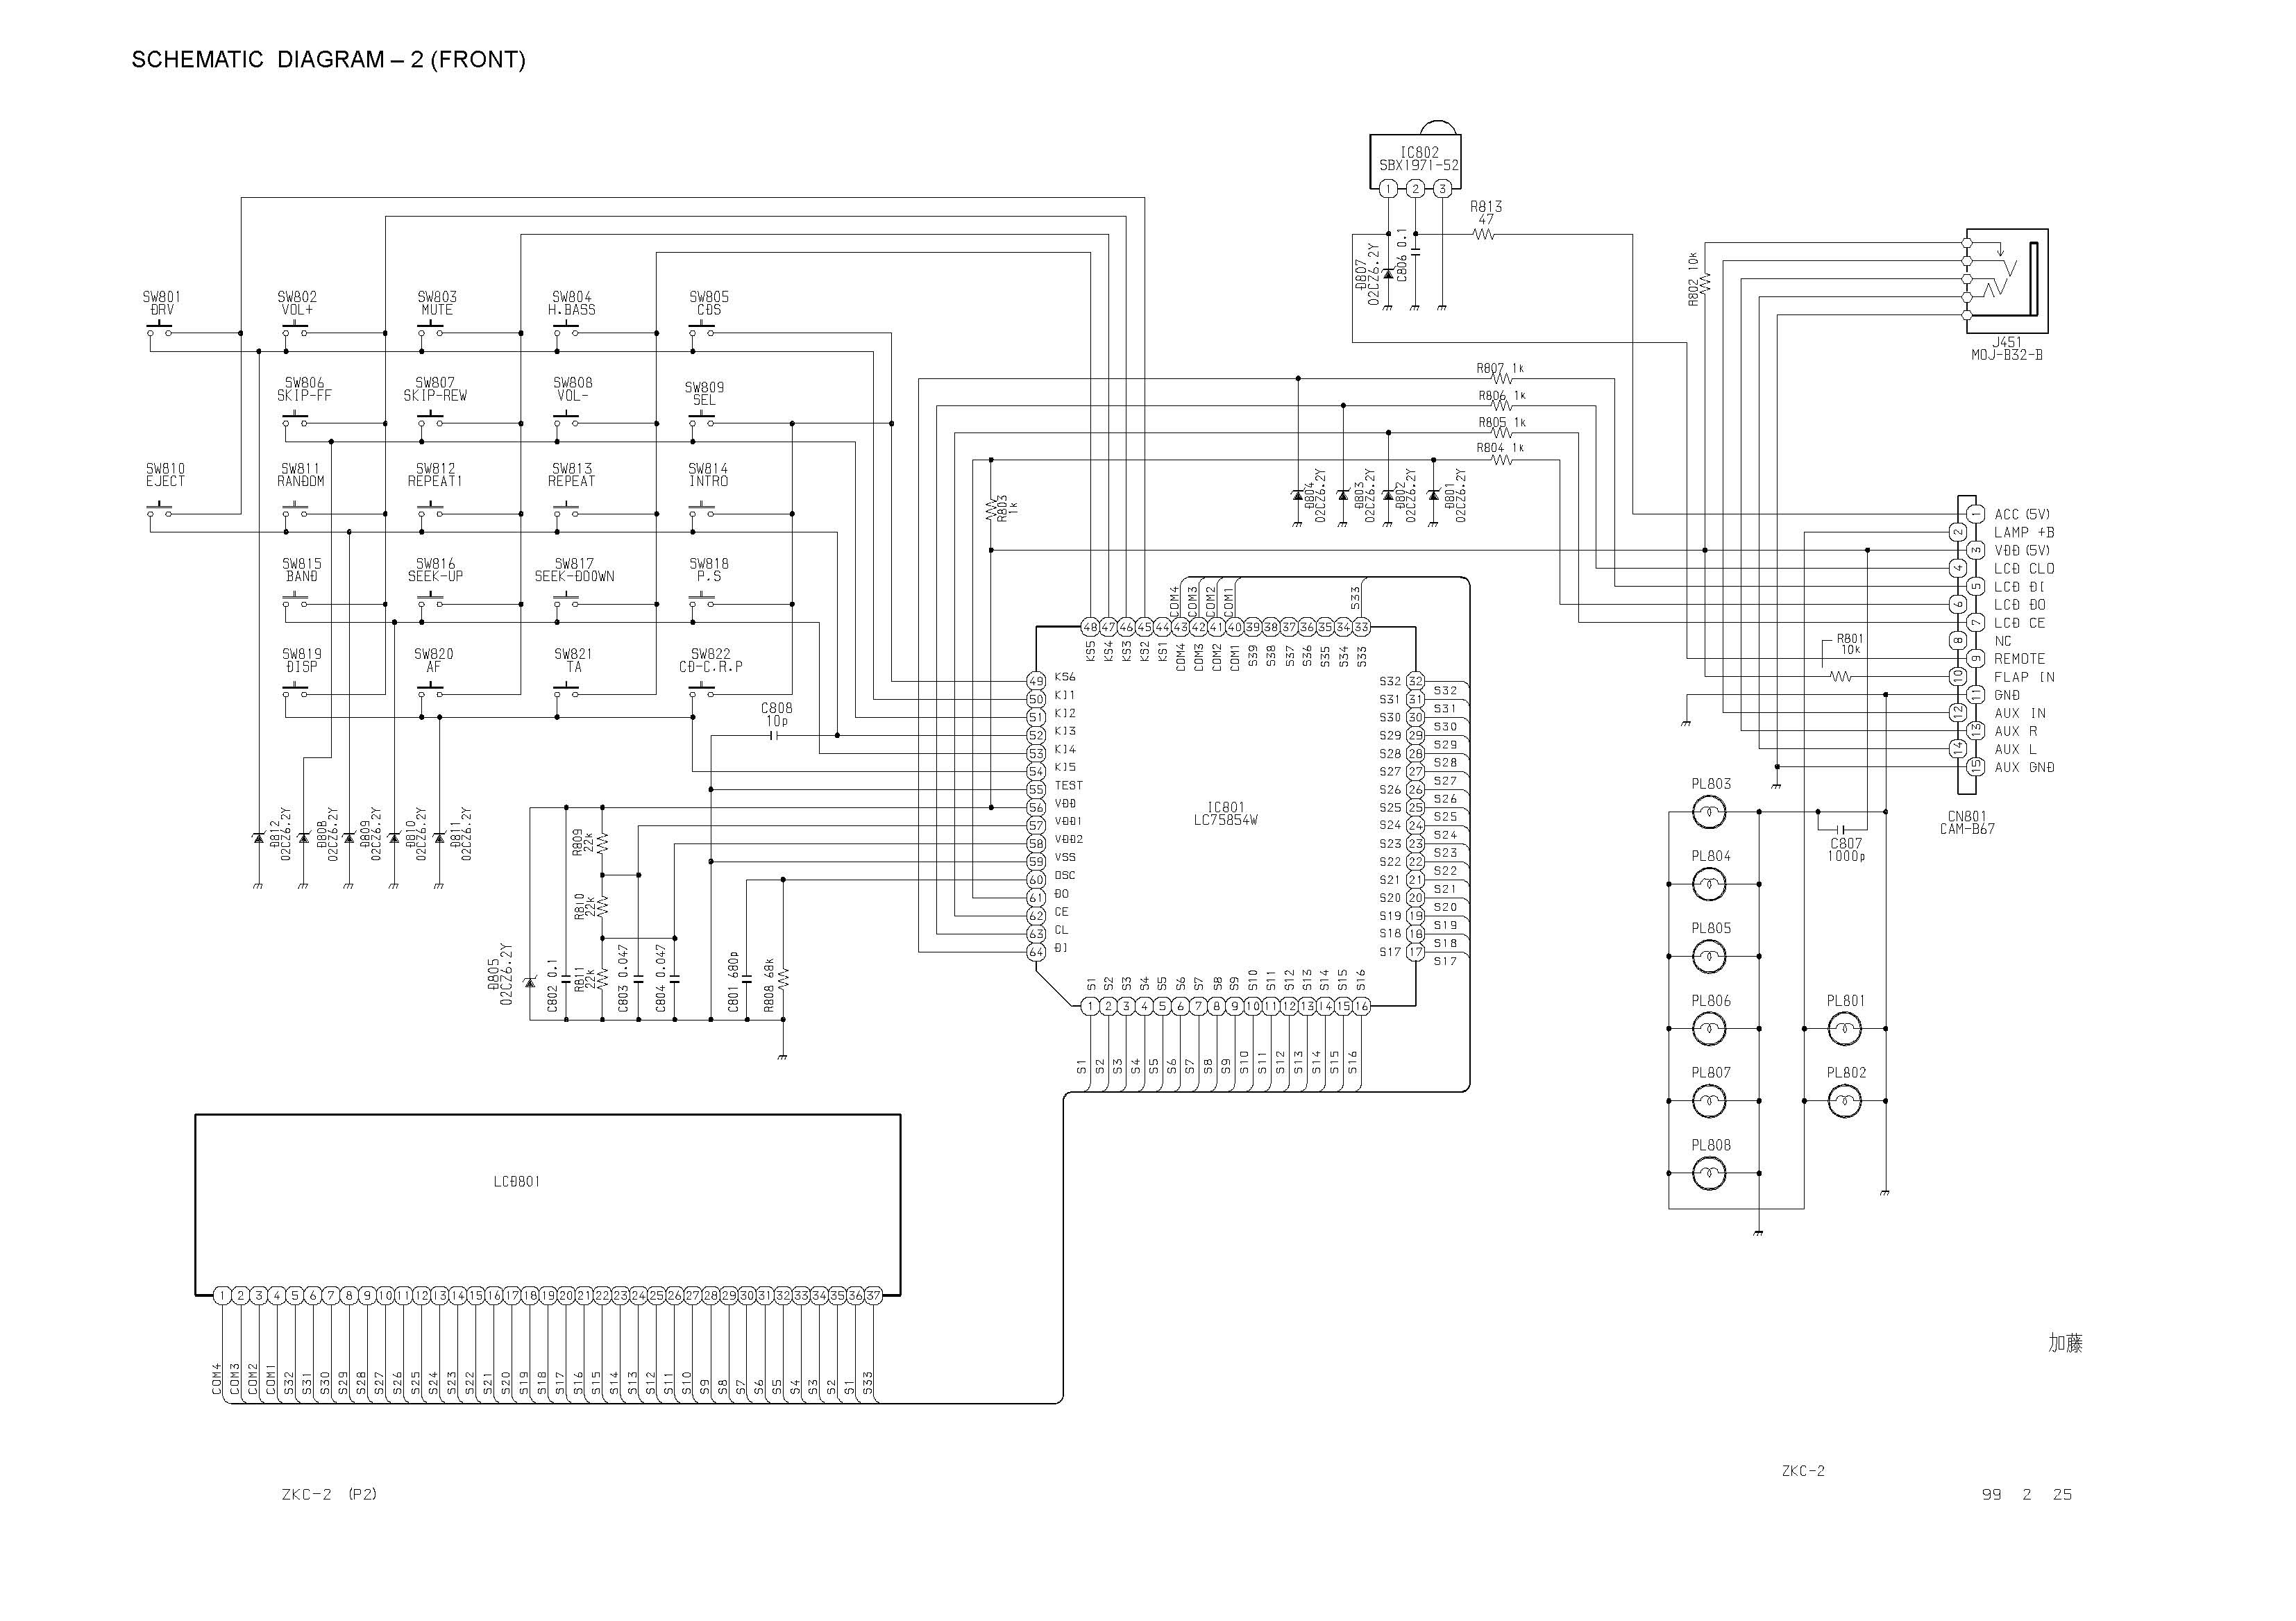 Aiwa CDC-R 146M Schematic Diagram Main / Front in PDF